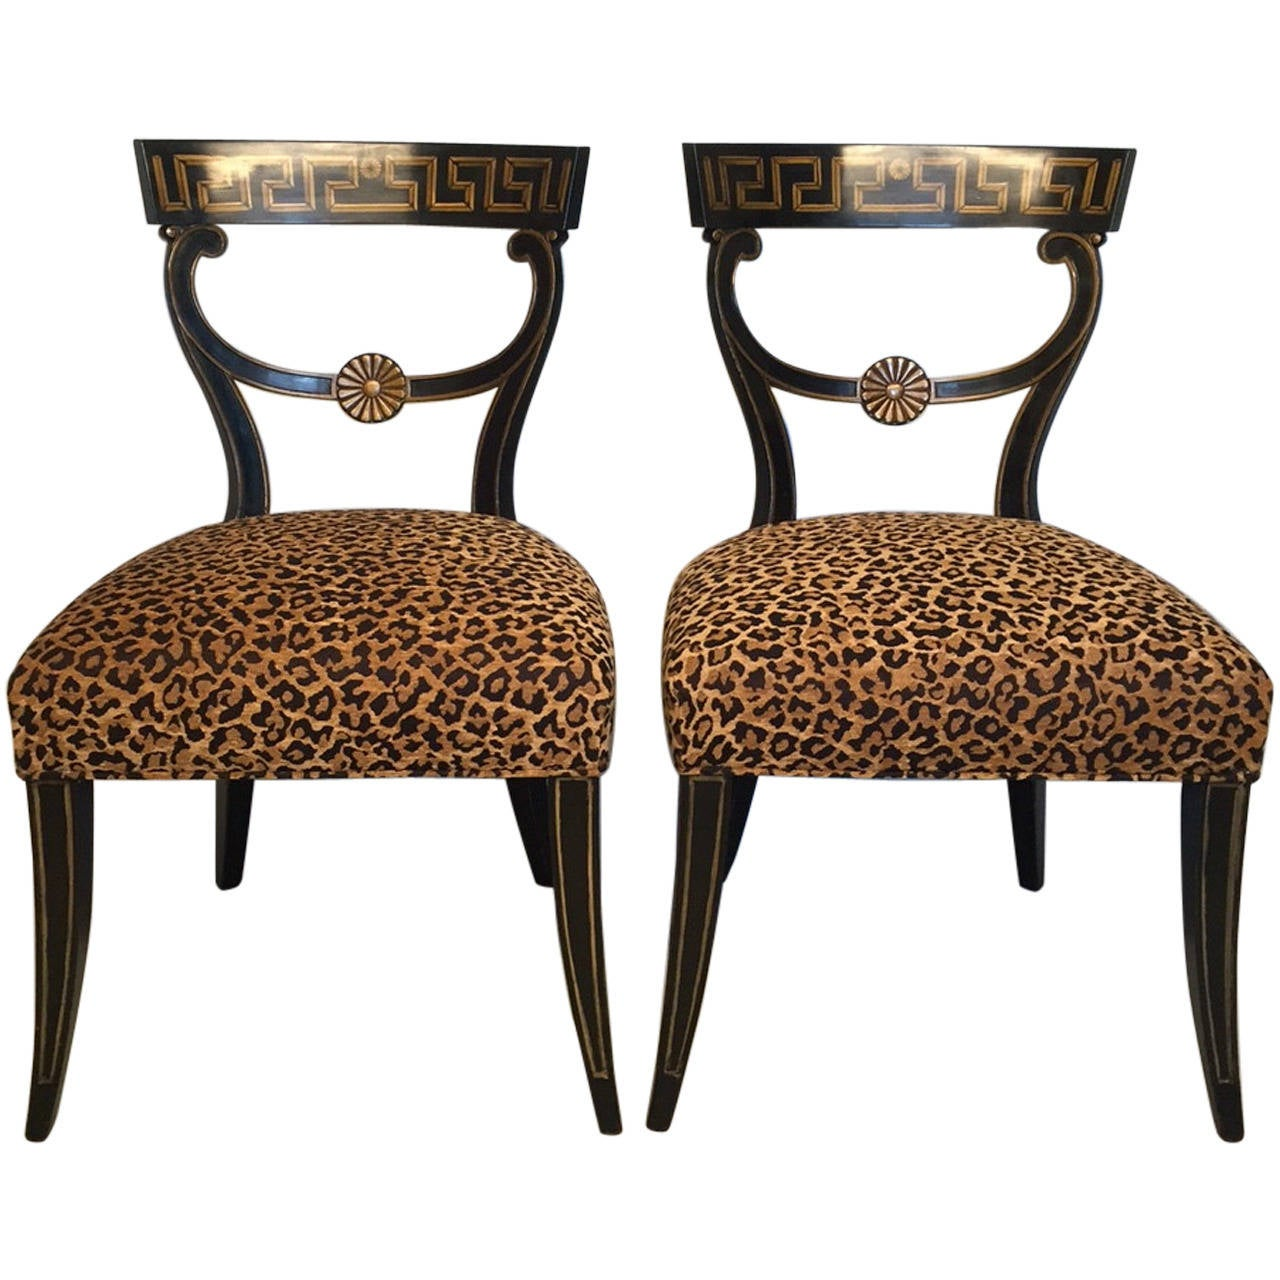 Pair of s dressy hollywood regency style side chairs